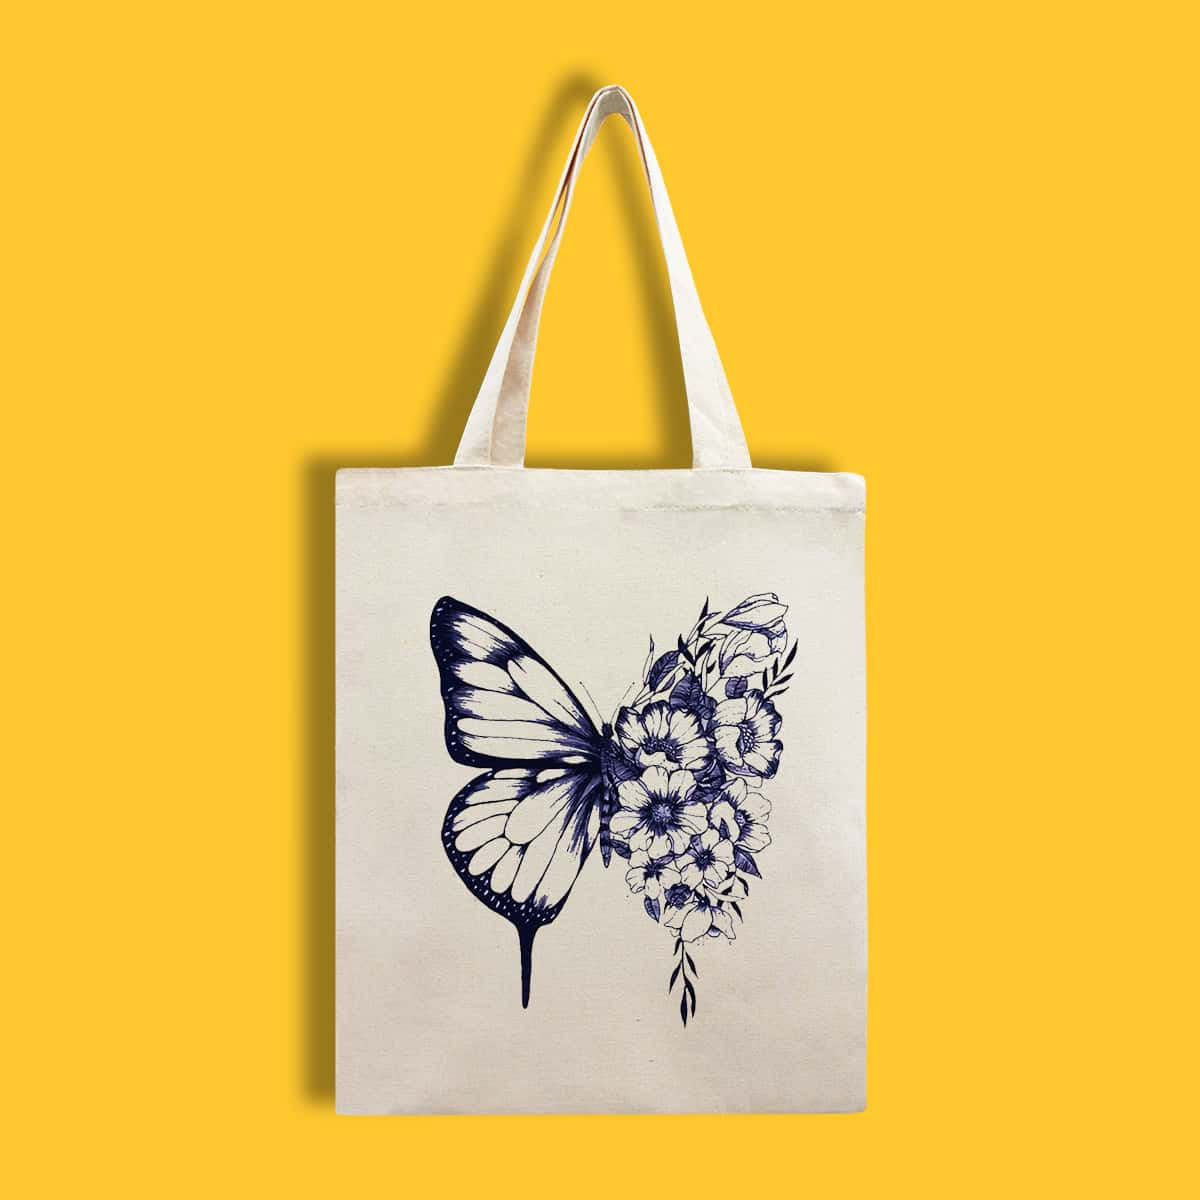 Floral & Butterfly Graphic Shopper Bag